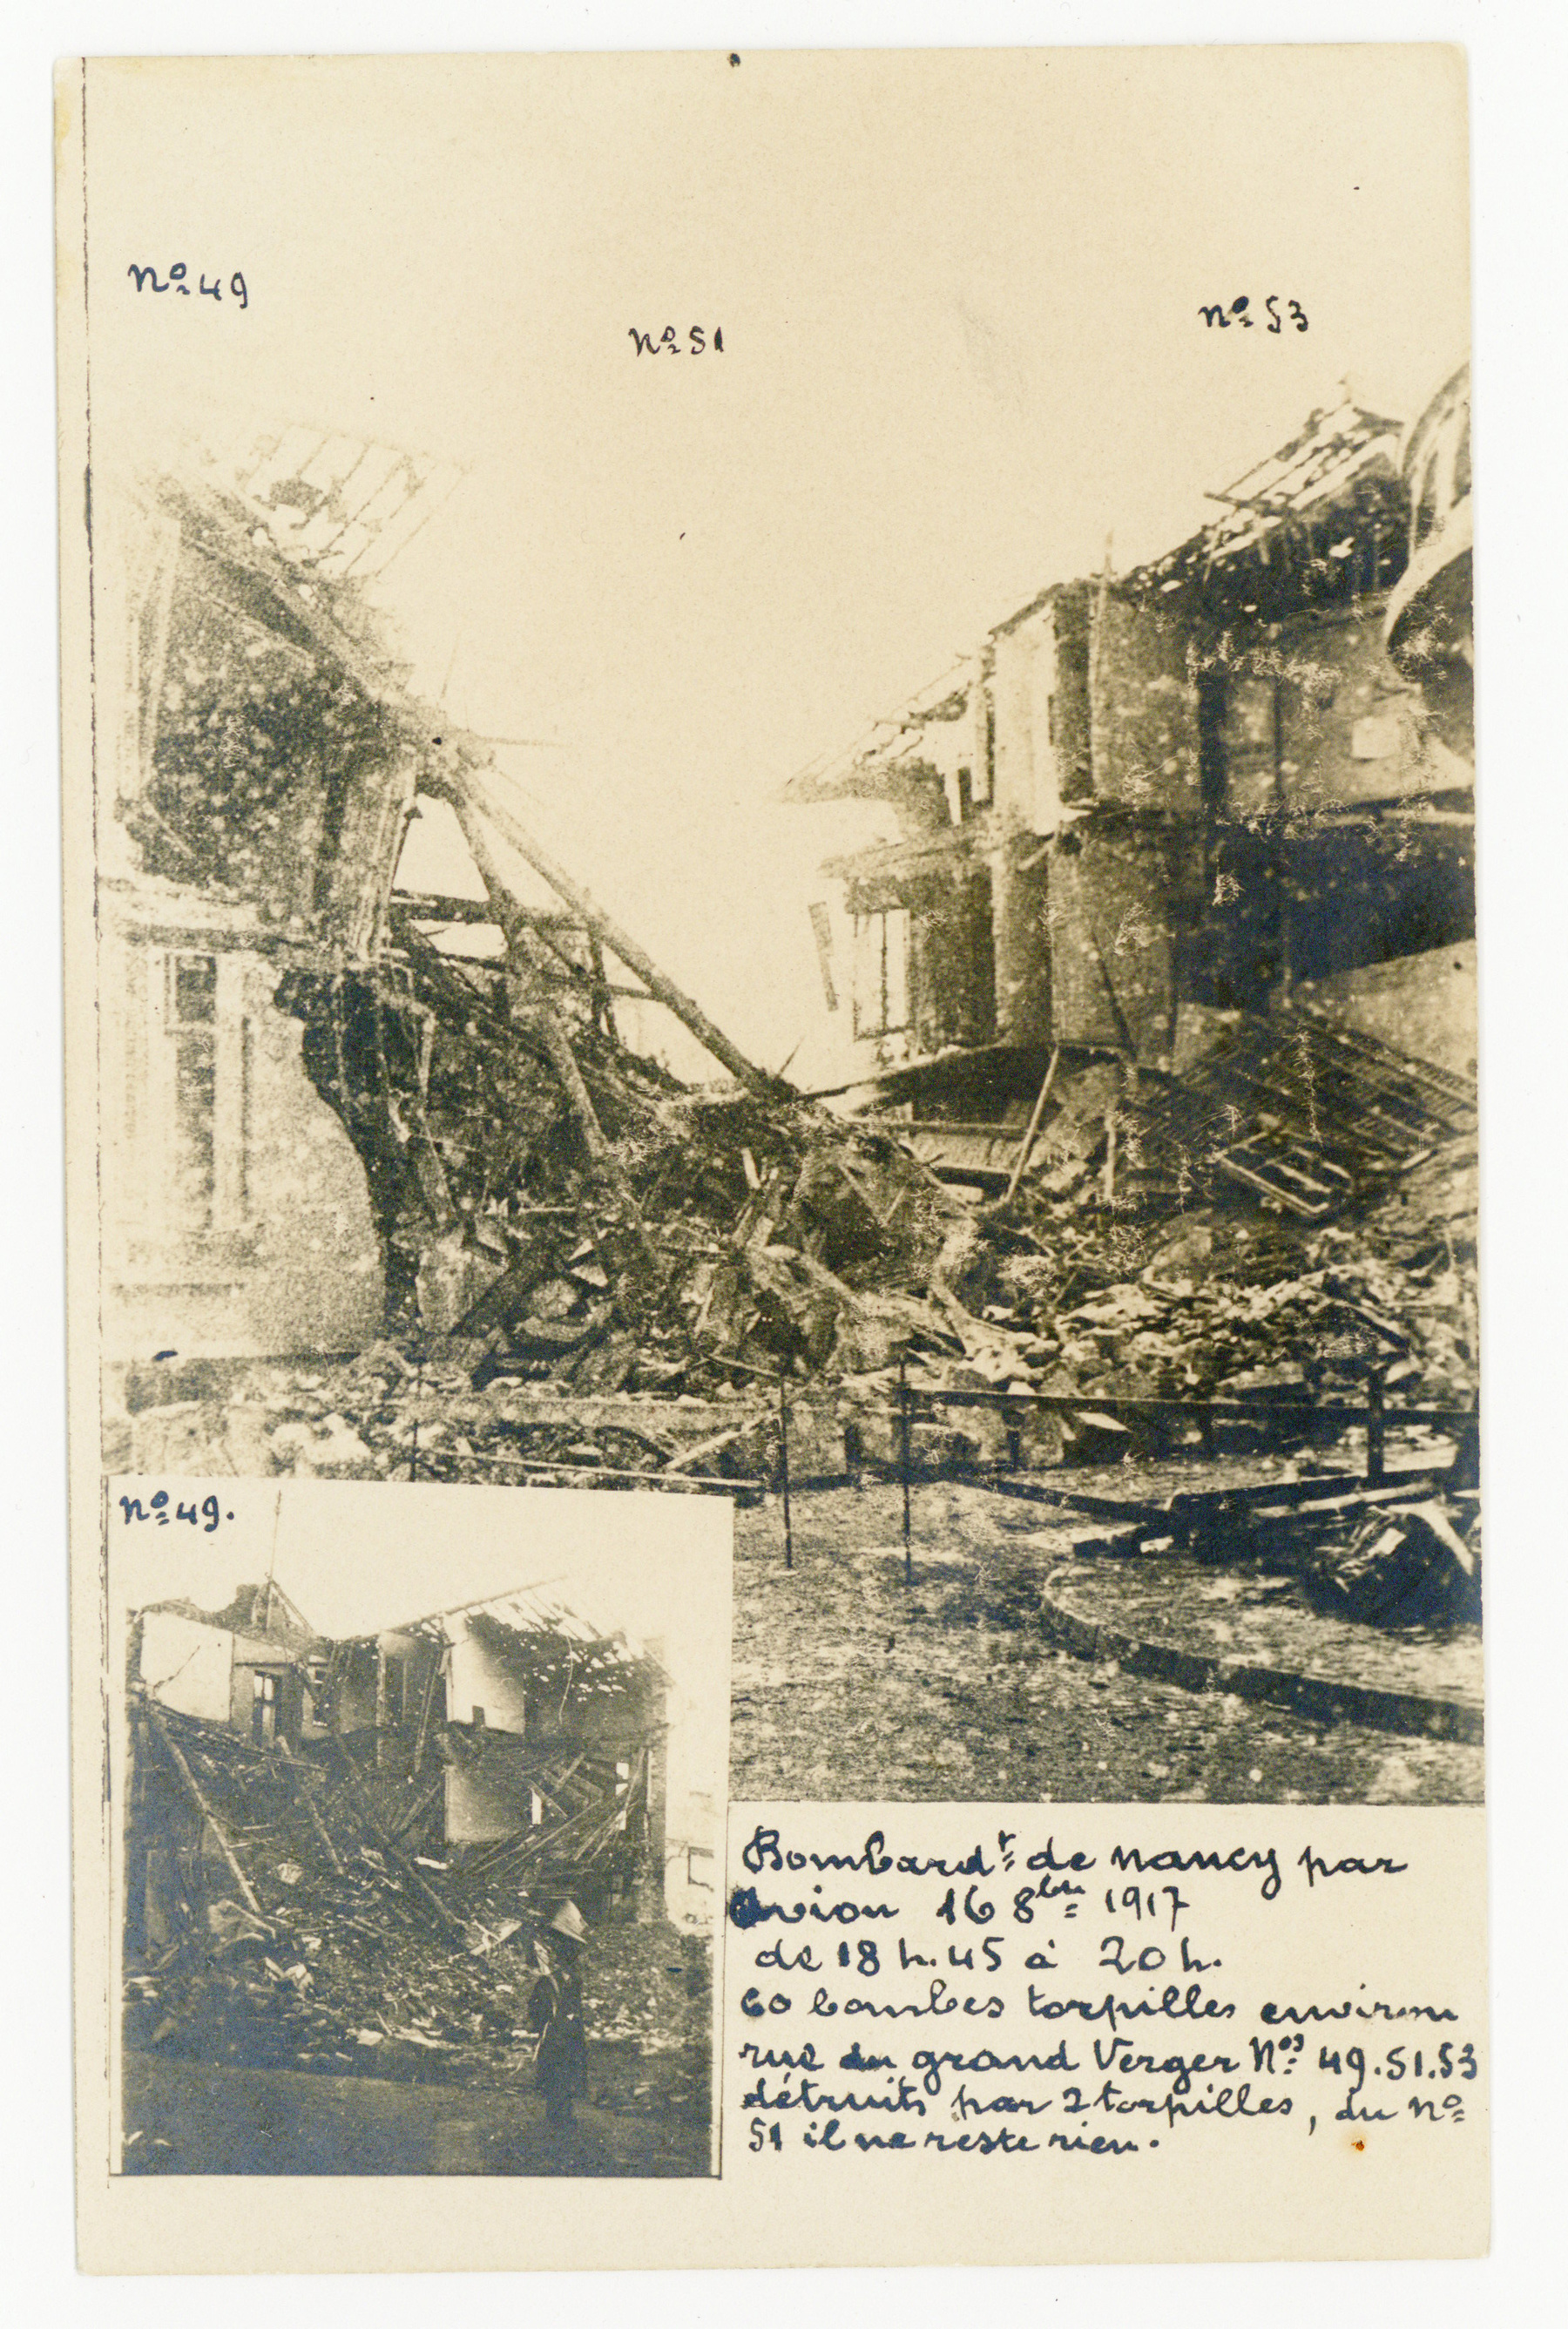 Contenu du Bombardement d'octobre 1917, rue du Grand Verger.